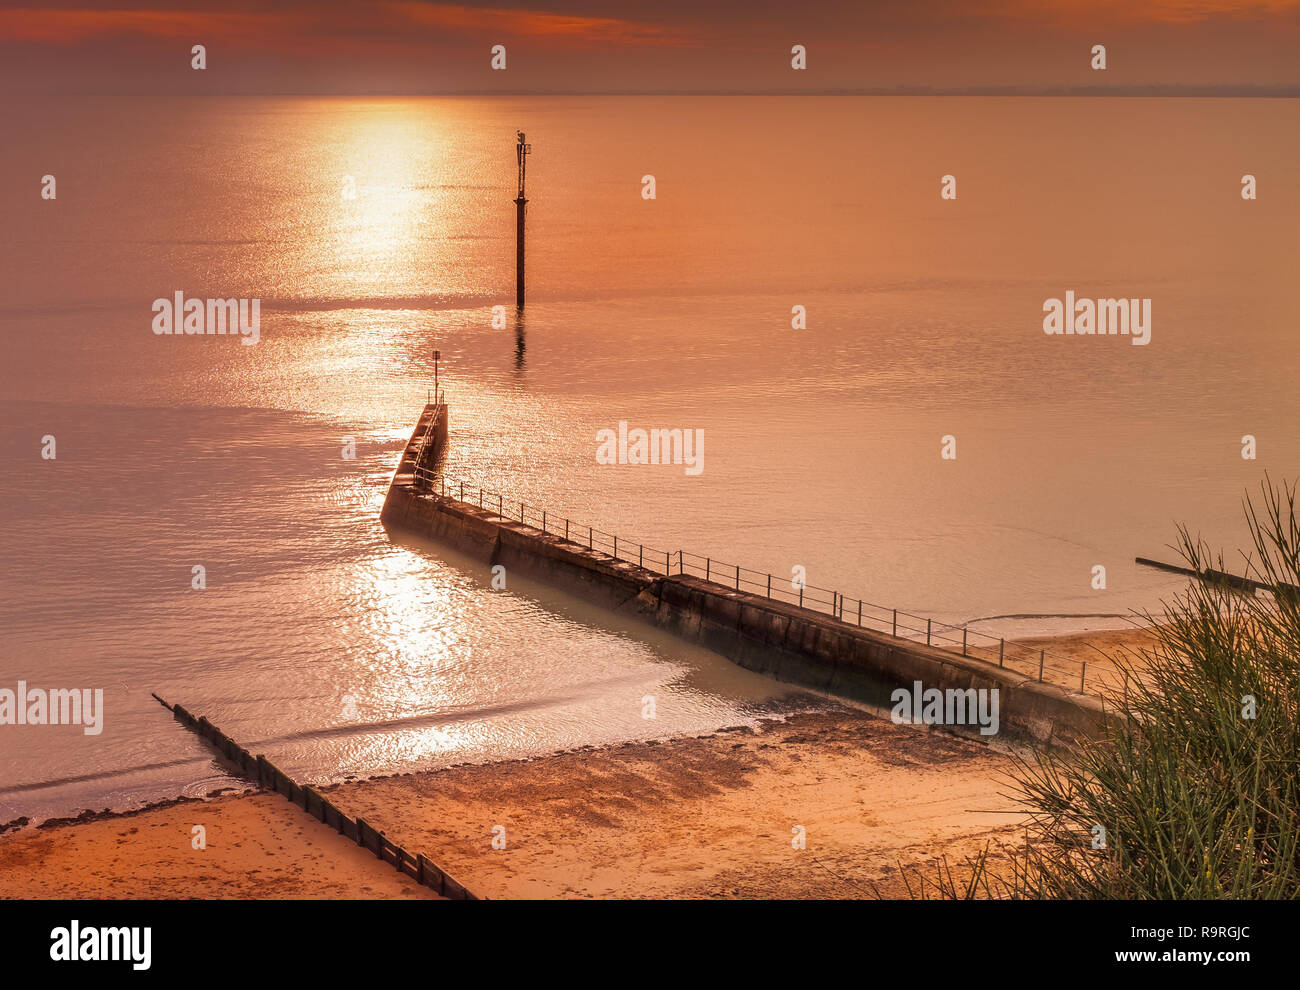 West cliff Ramsgate, uk beach and water breaker walkway late afternoon in winter as the sun is starting to set,making the sea shimmer and the light tu - Stock Image